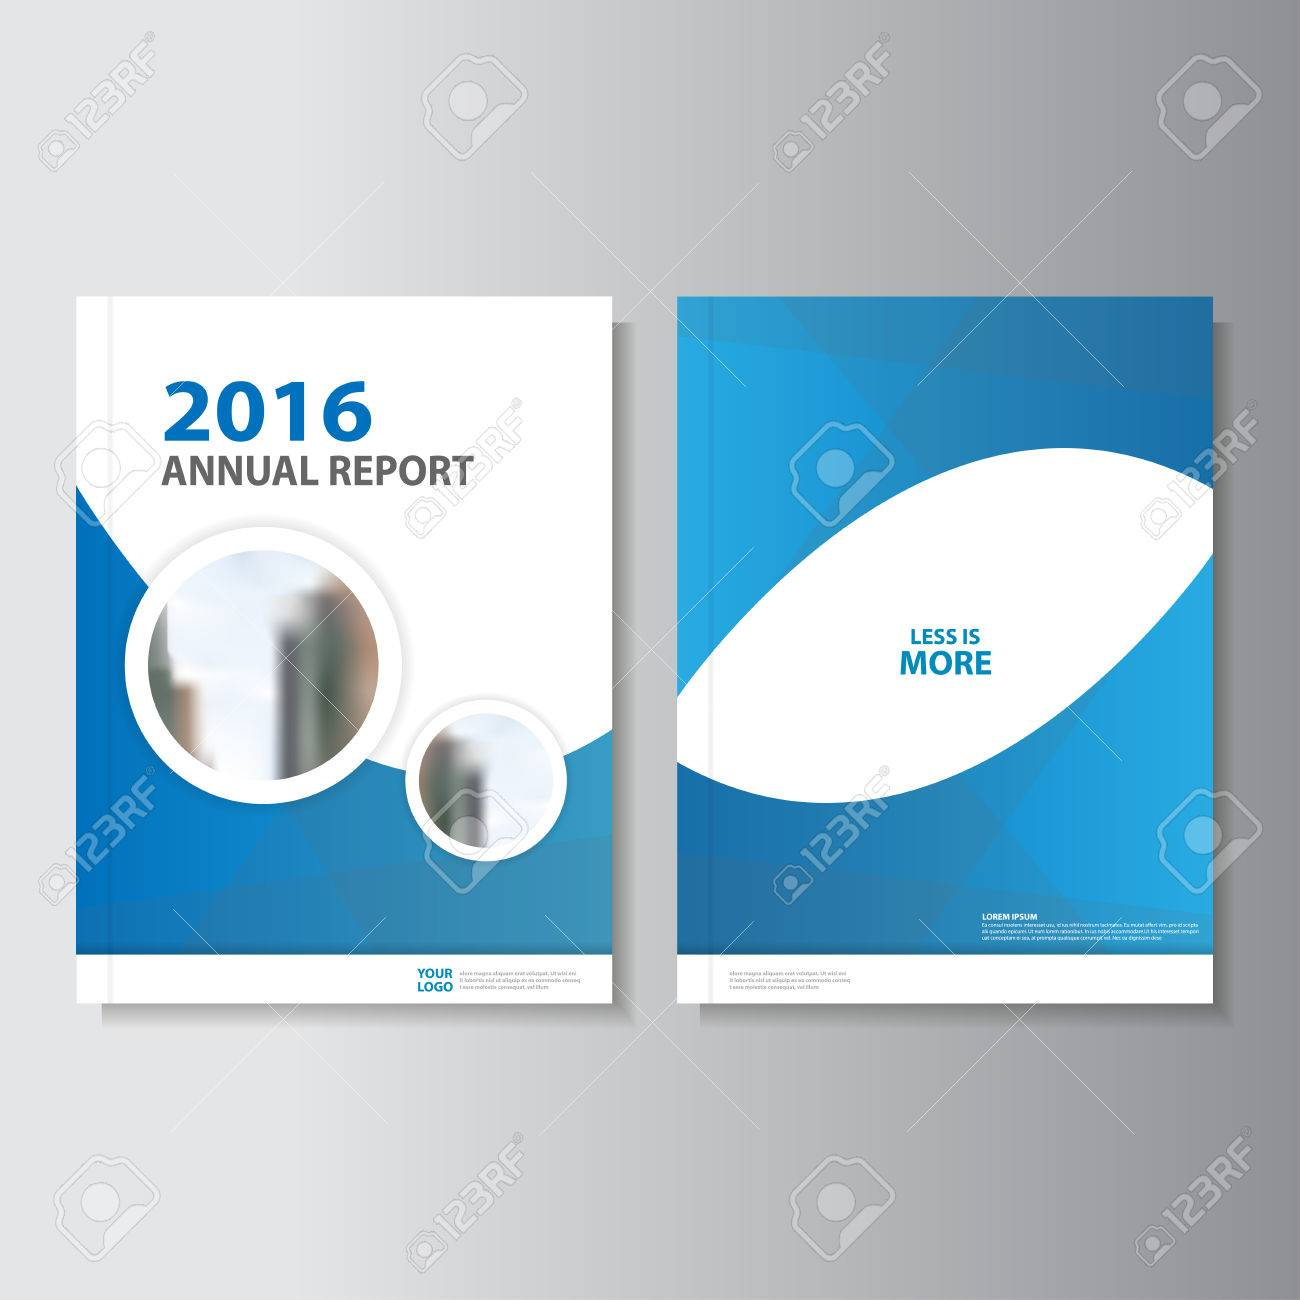 Blue Circle Annual Report Leaflet Brochure Flyer Template Design - Brochure flyer templates